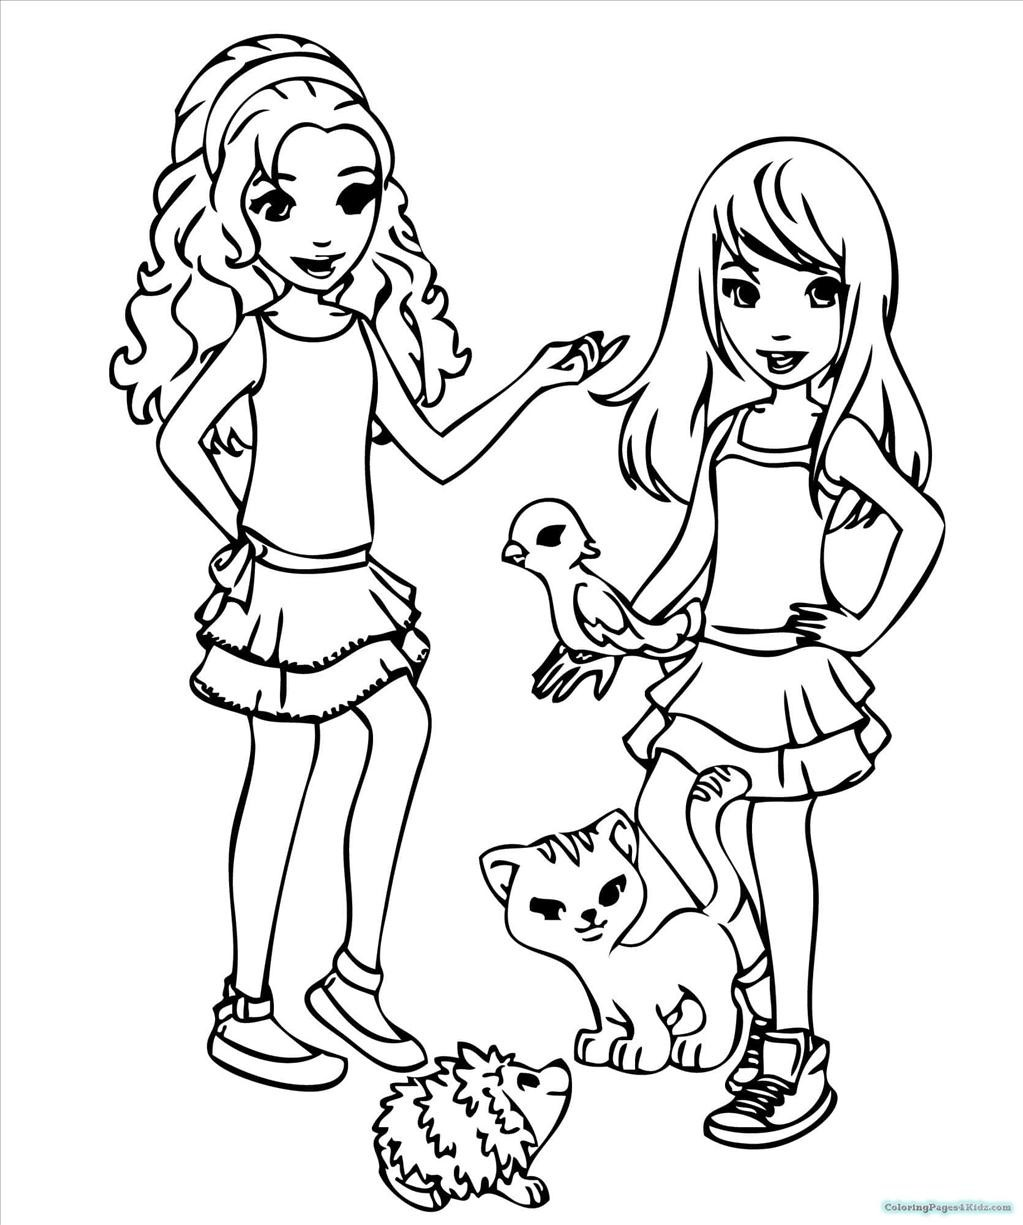 1023x1225 Top Lego Friends Coloring Pages Wall Picture Unknown Resolutions